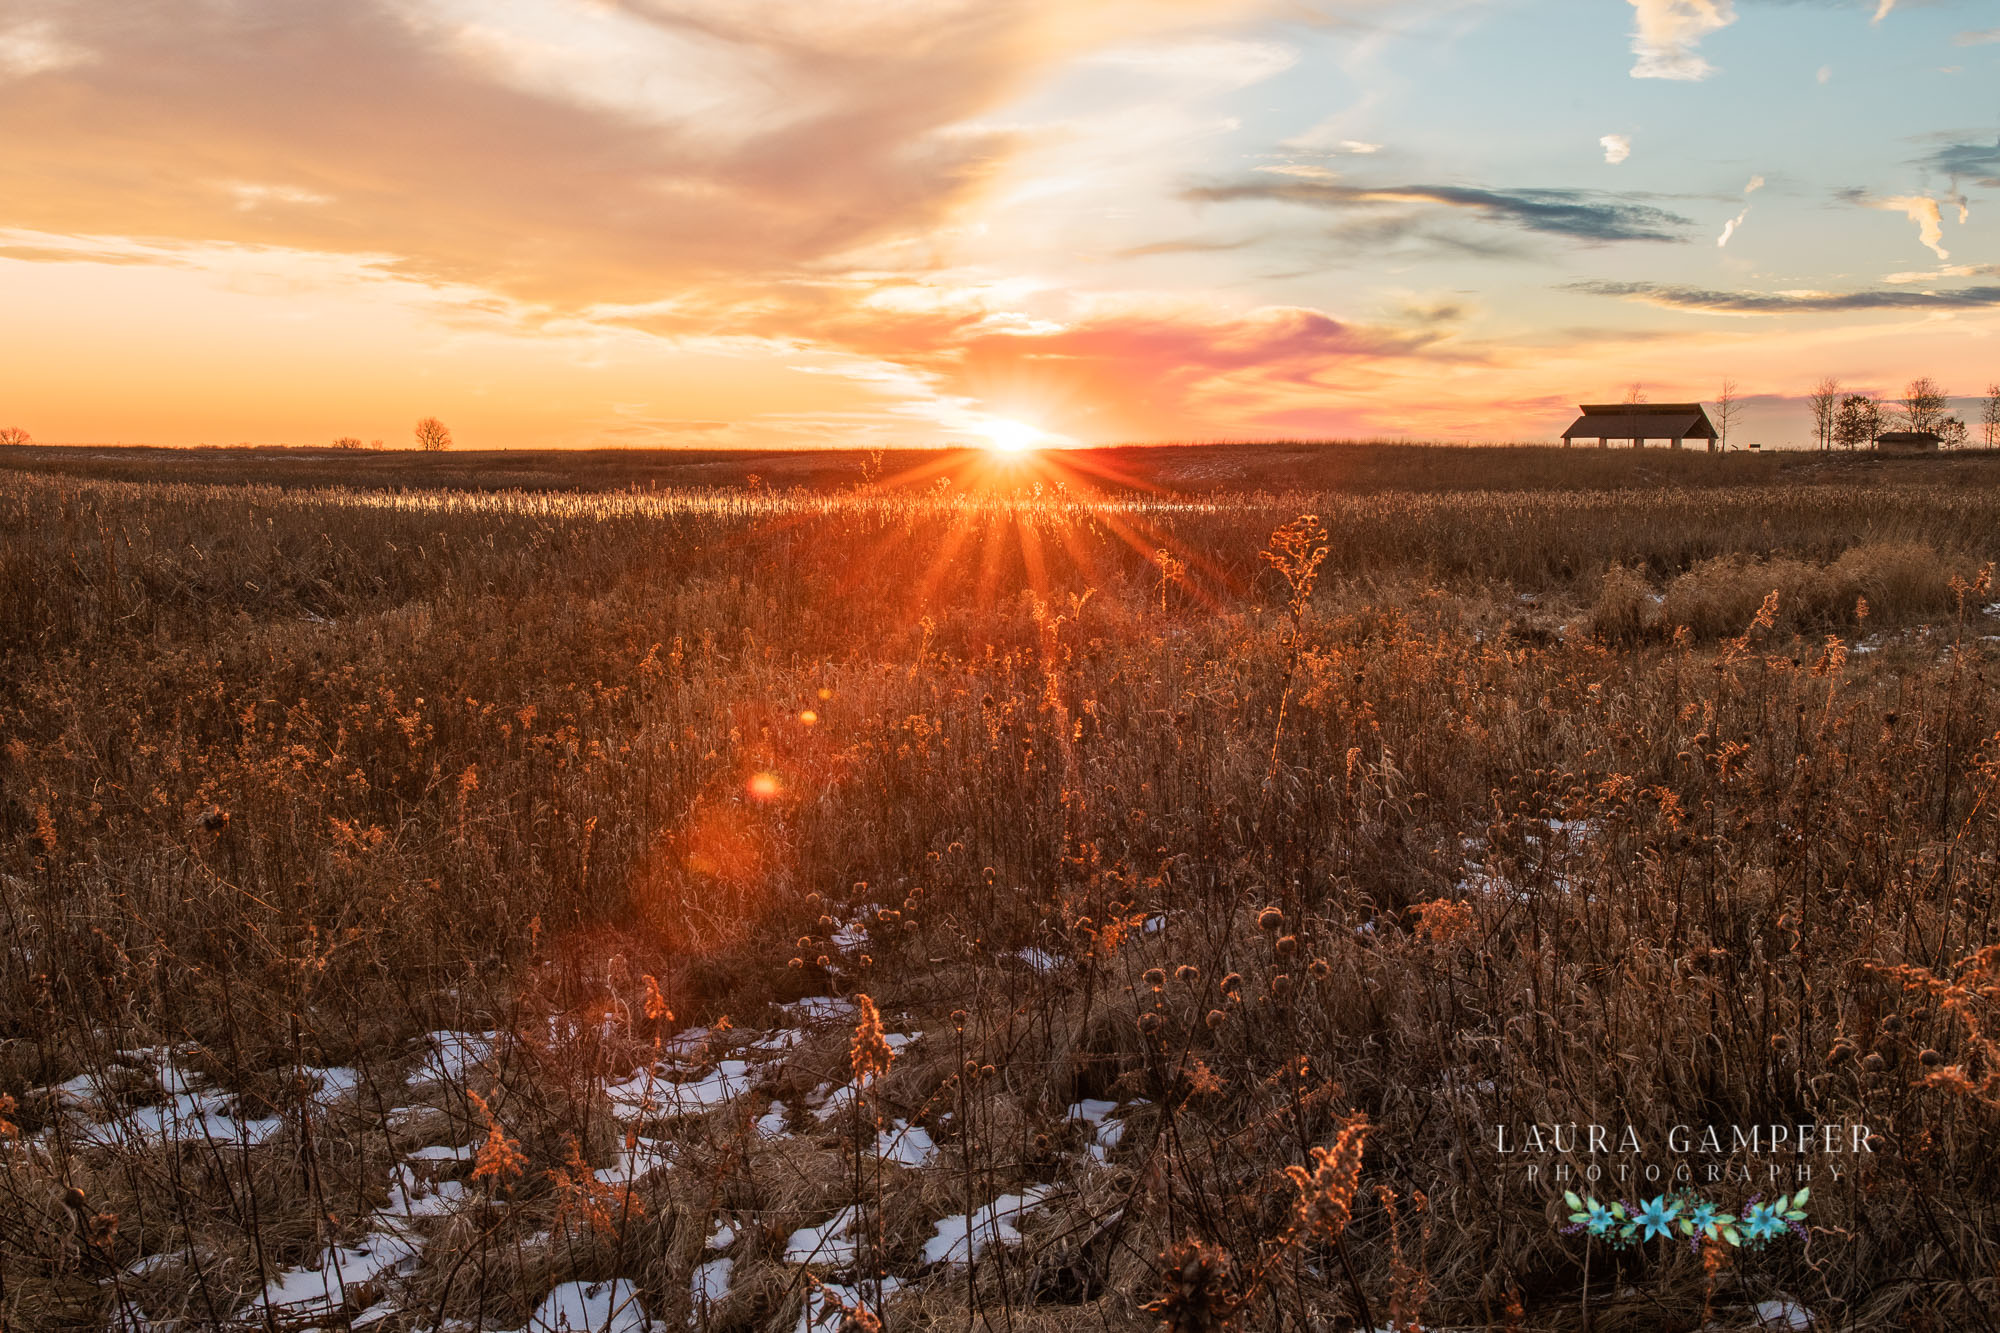 kane-county-forest-preserves-laura-gampfer-photography